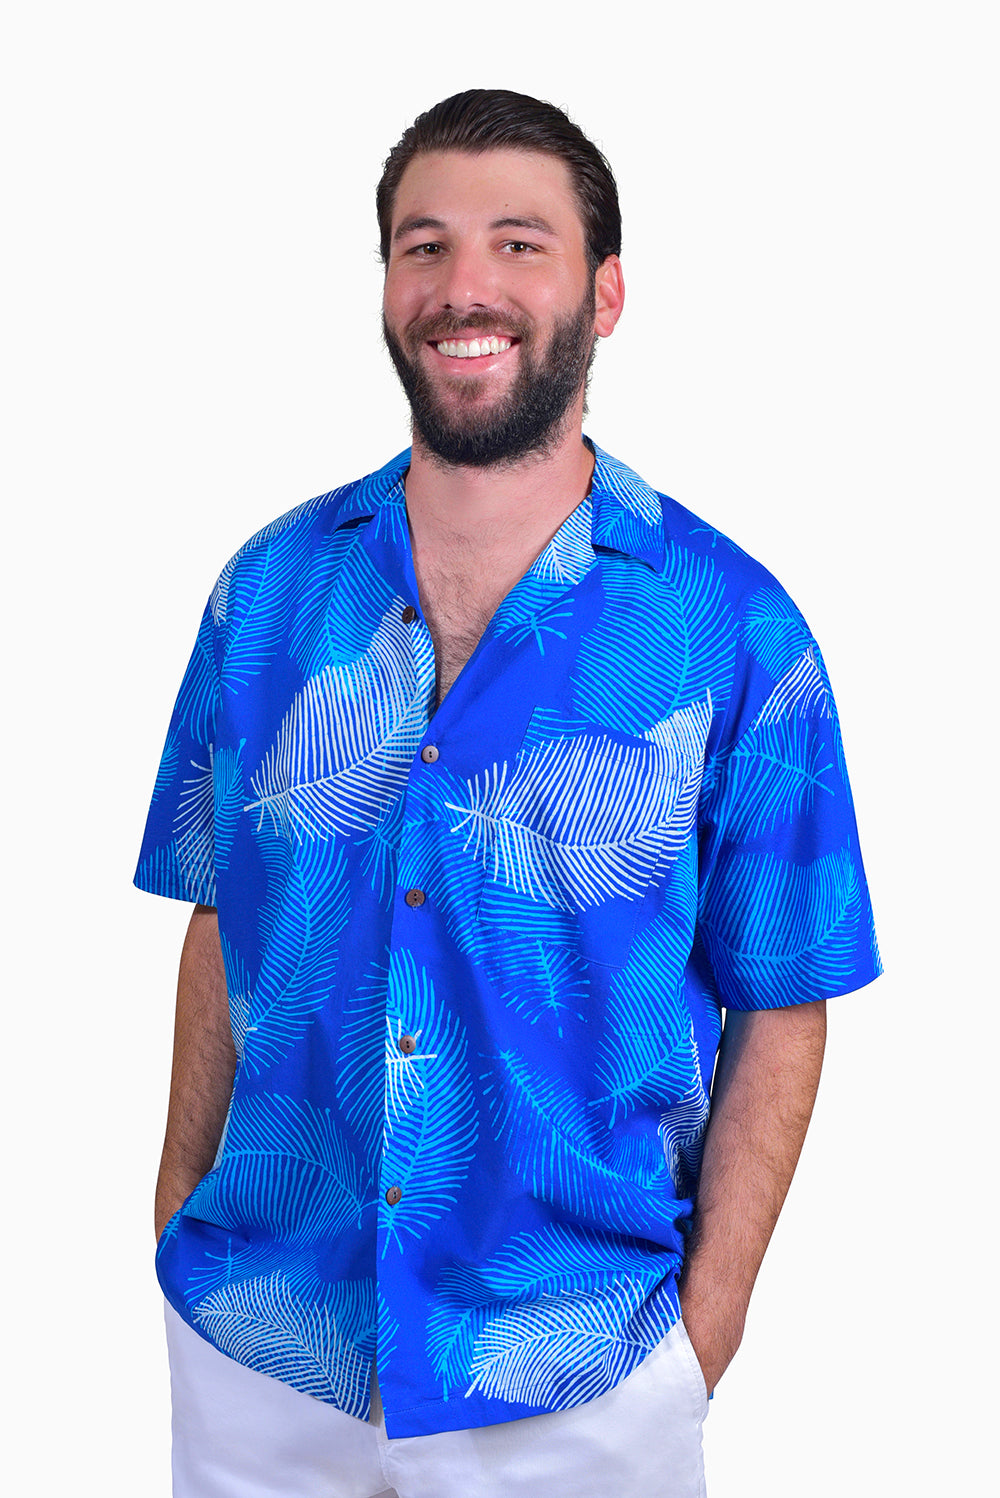 Blue & White (Sky) - Handmade Batik Men's Shirt - Palm Design